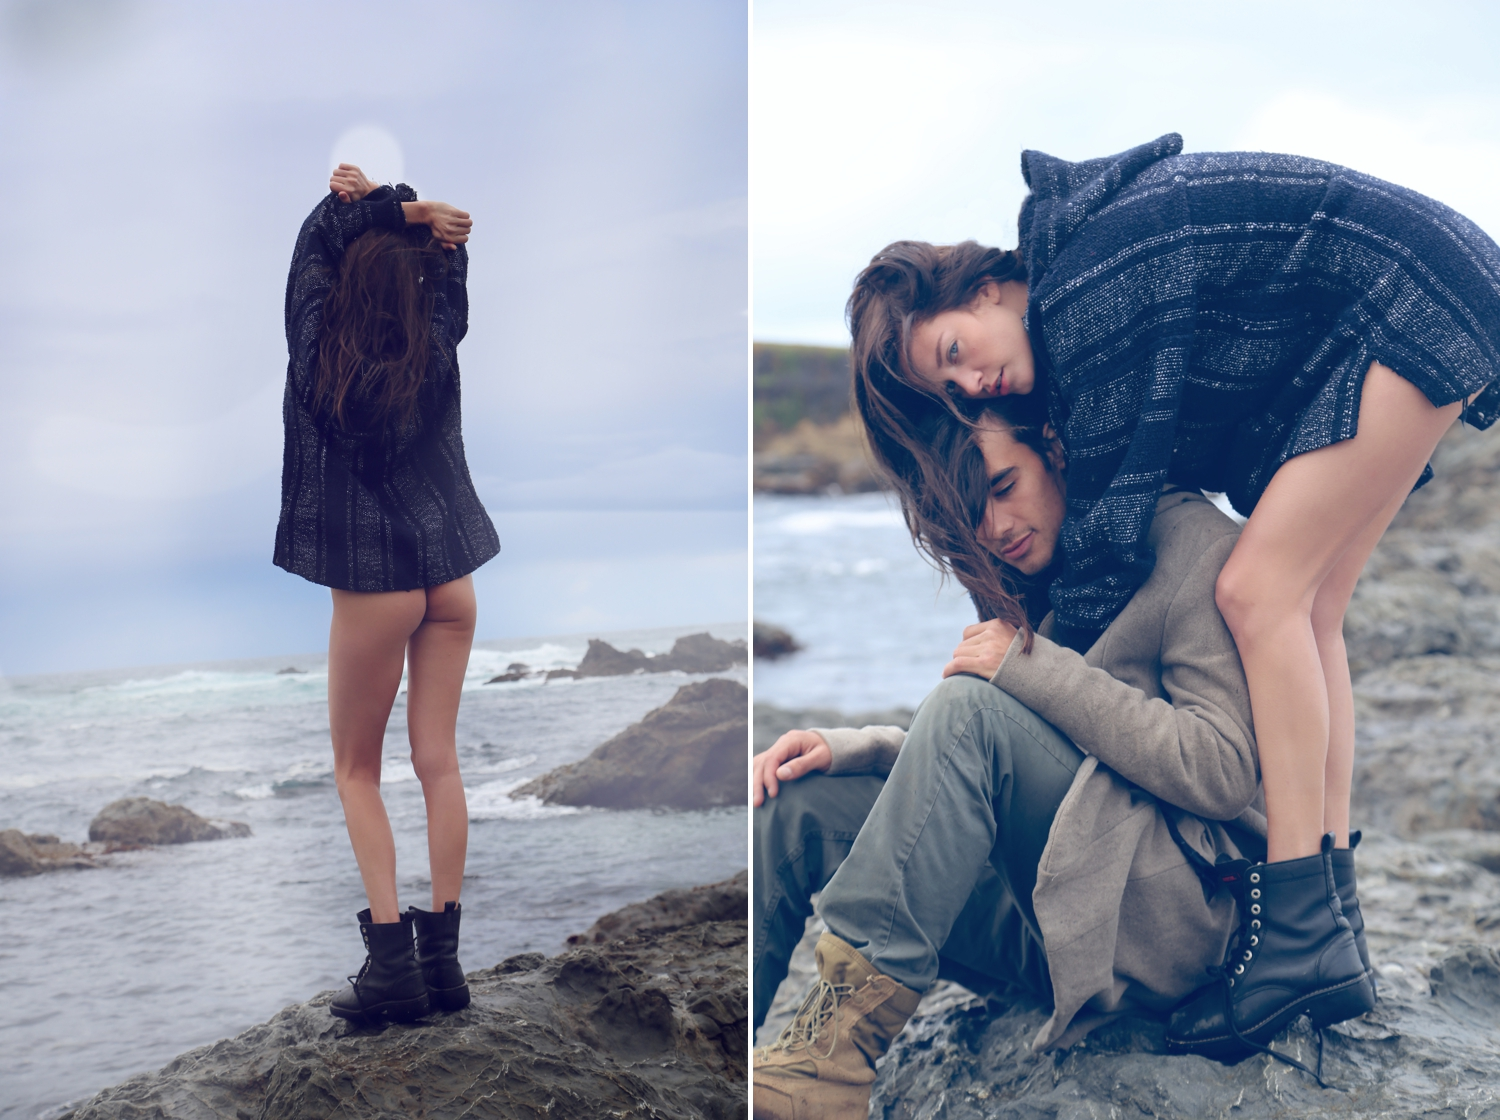 next fashion blogger, cool couple,couple fashion spread, fashion editorial glass beach, fashion blogger, heather van gaale, travel and fashion blog, best photo blog, playful nude editorial